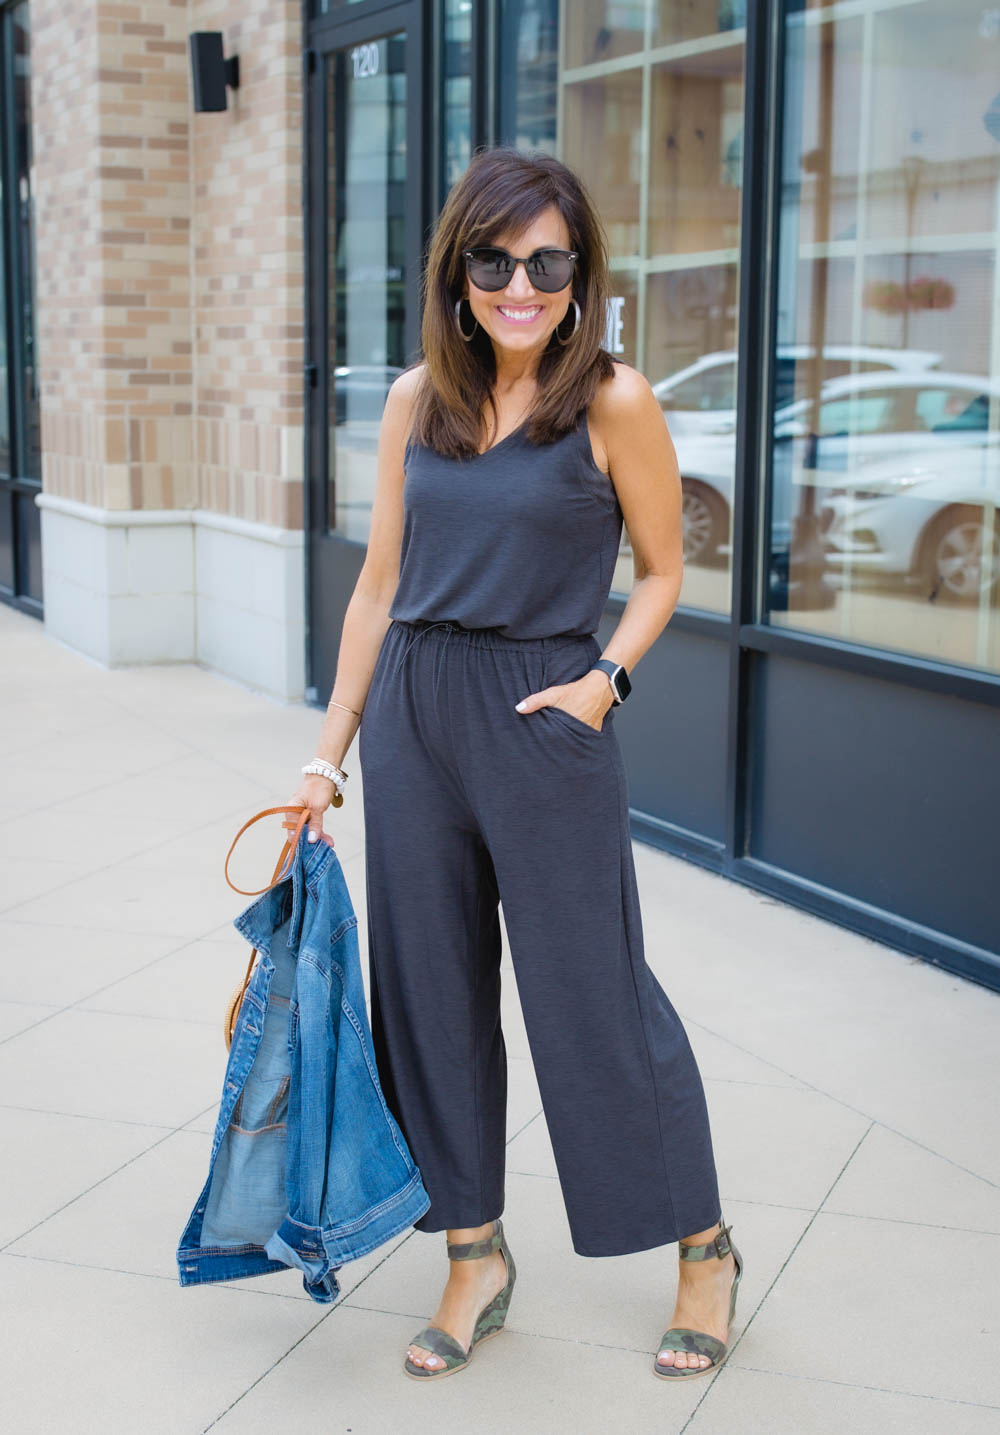 Summer Jumpsuit from Old Navy